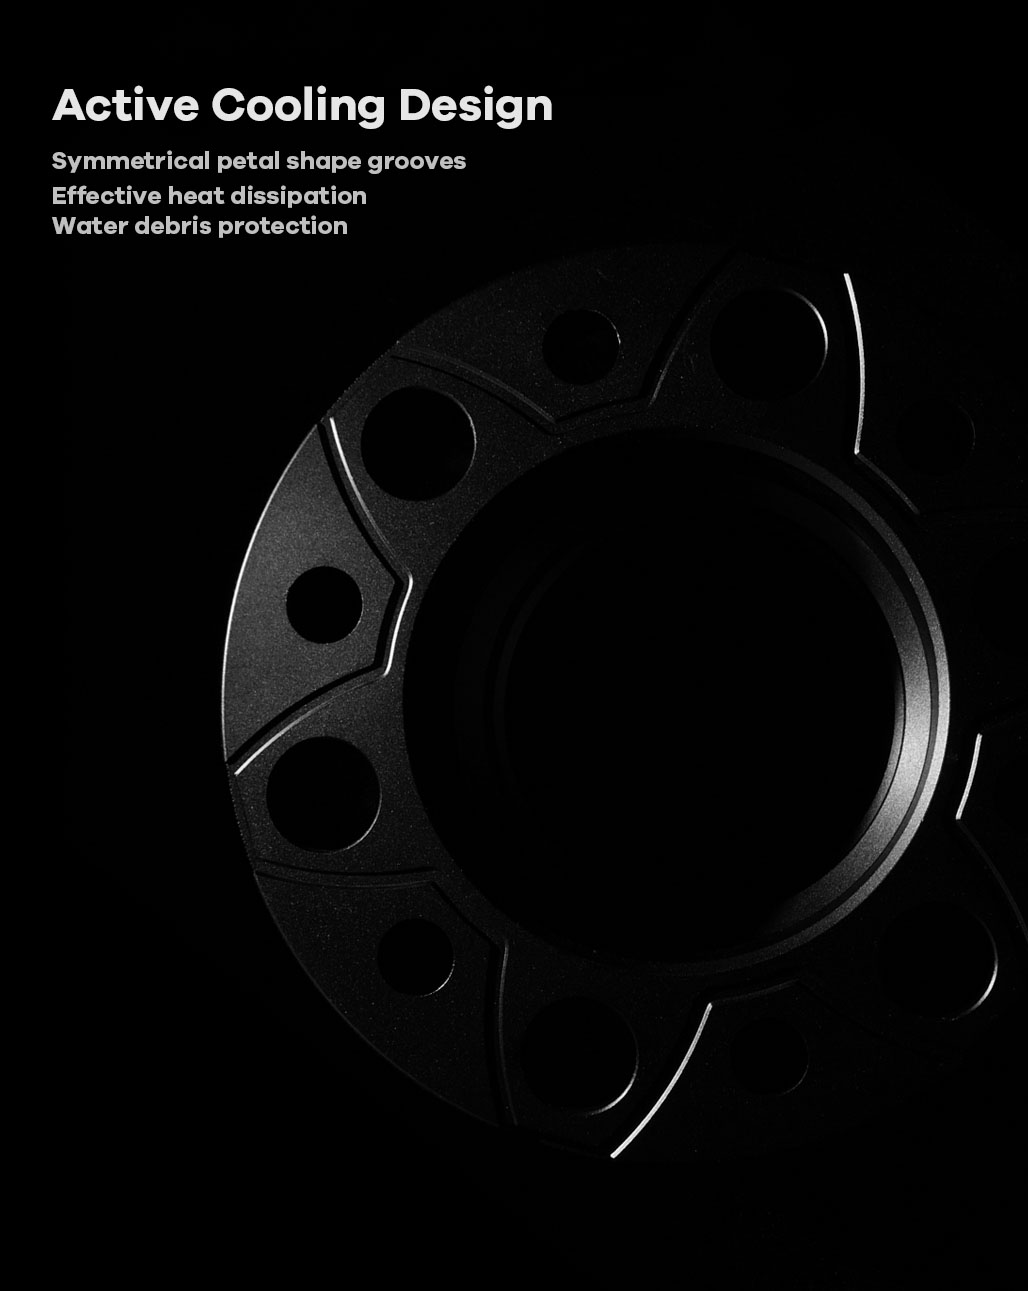 BONOSS-forged-active-cooling-wheel-spacer-6X139.7-107.1-M12X1.5-by-lulu-3